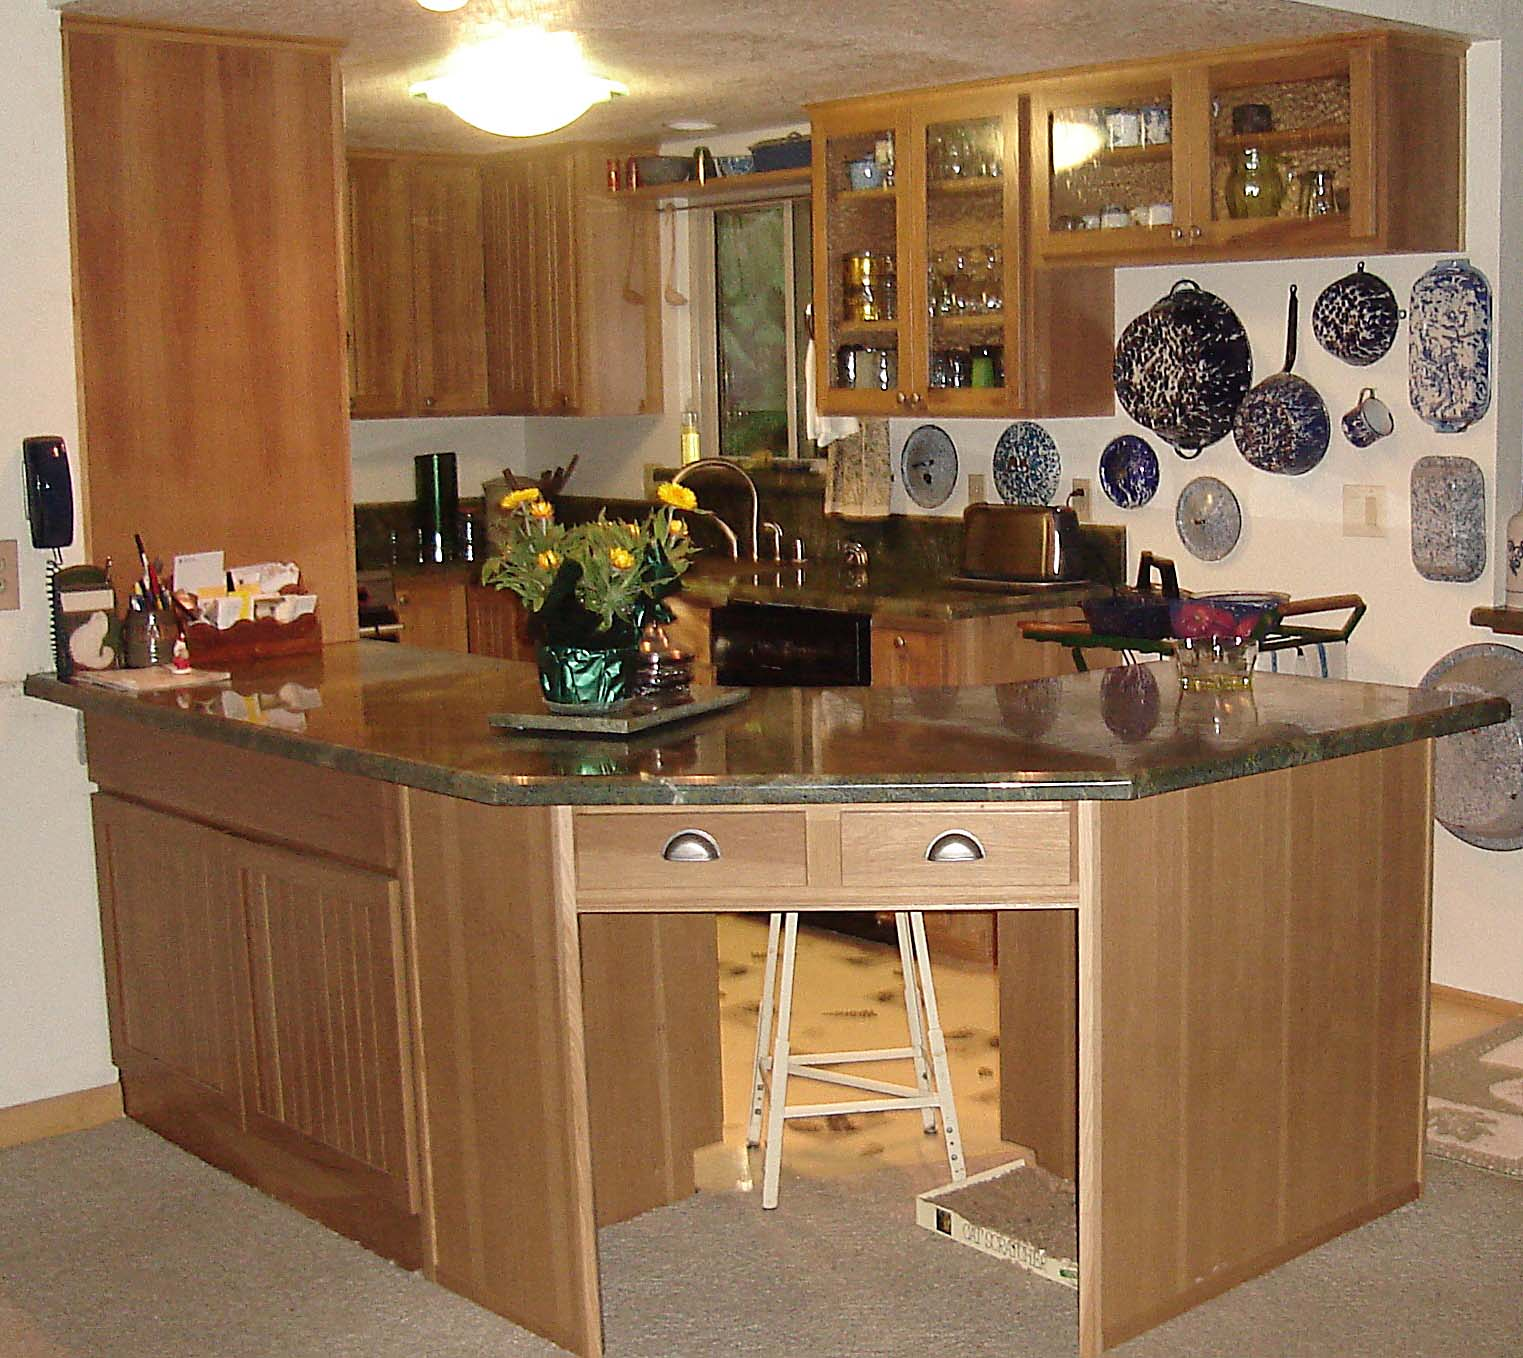 corner counter with maple cabinets and green granite countertop